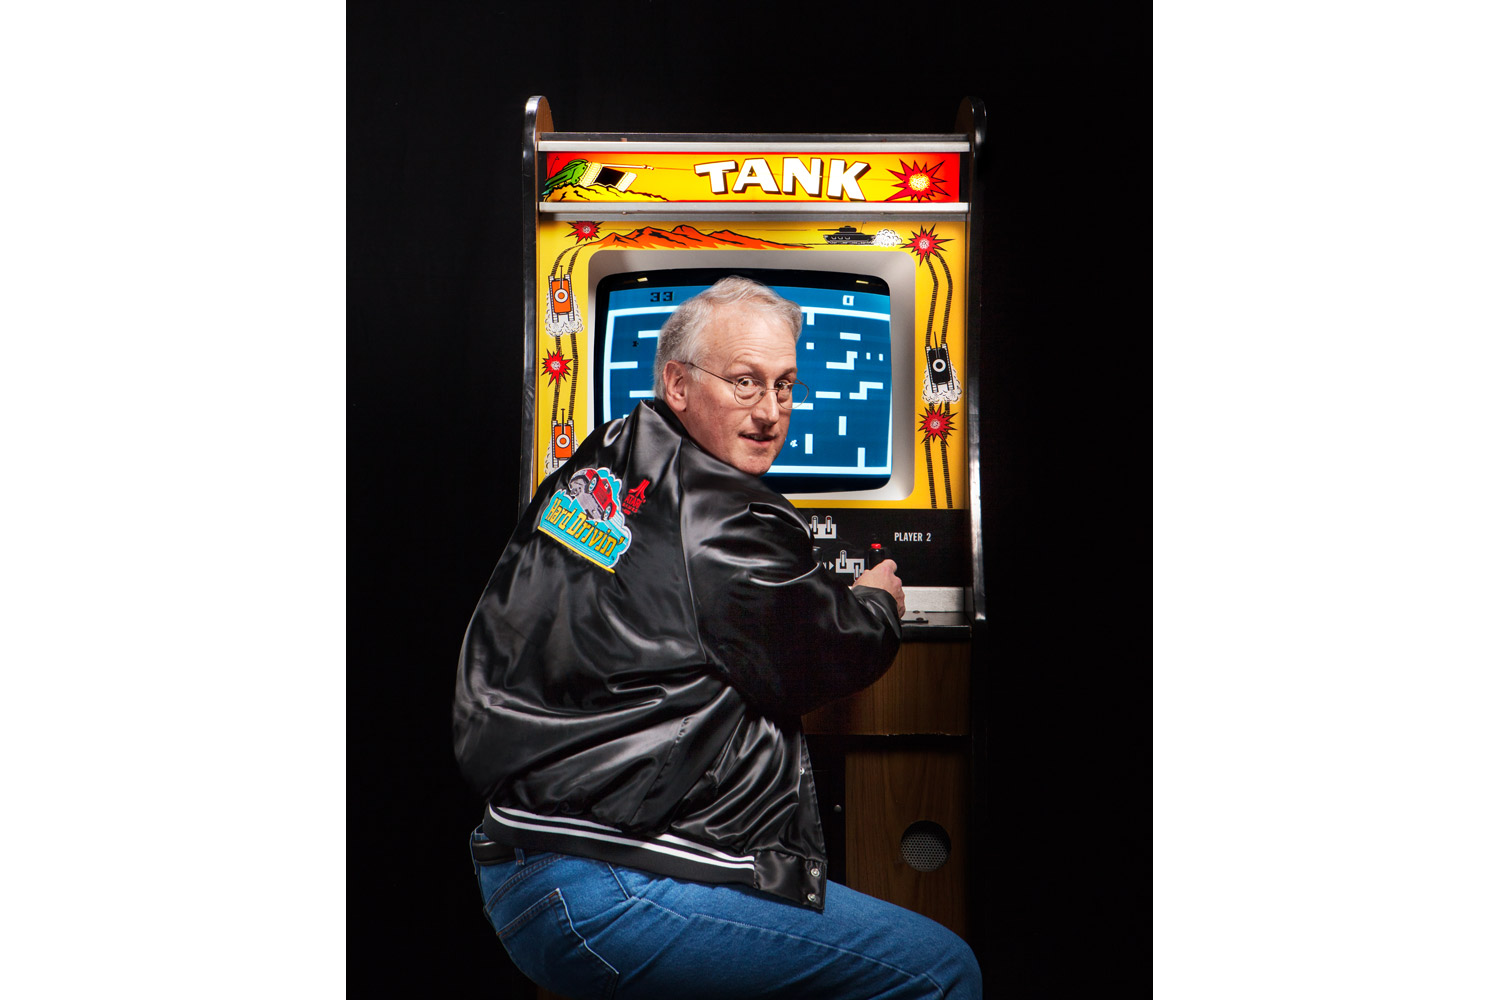 Lyle Rains, Tank (1974)                               His multi-joystick game rolled out several sequels. His new target: Angry Birds.